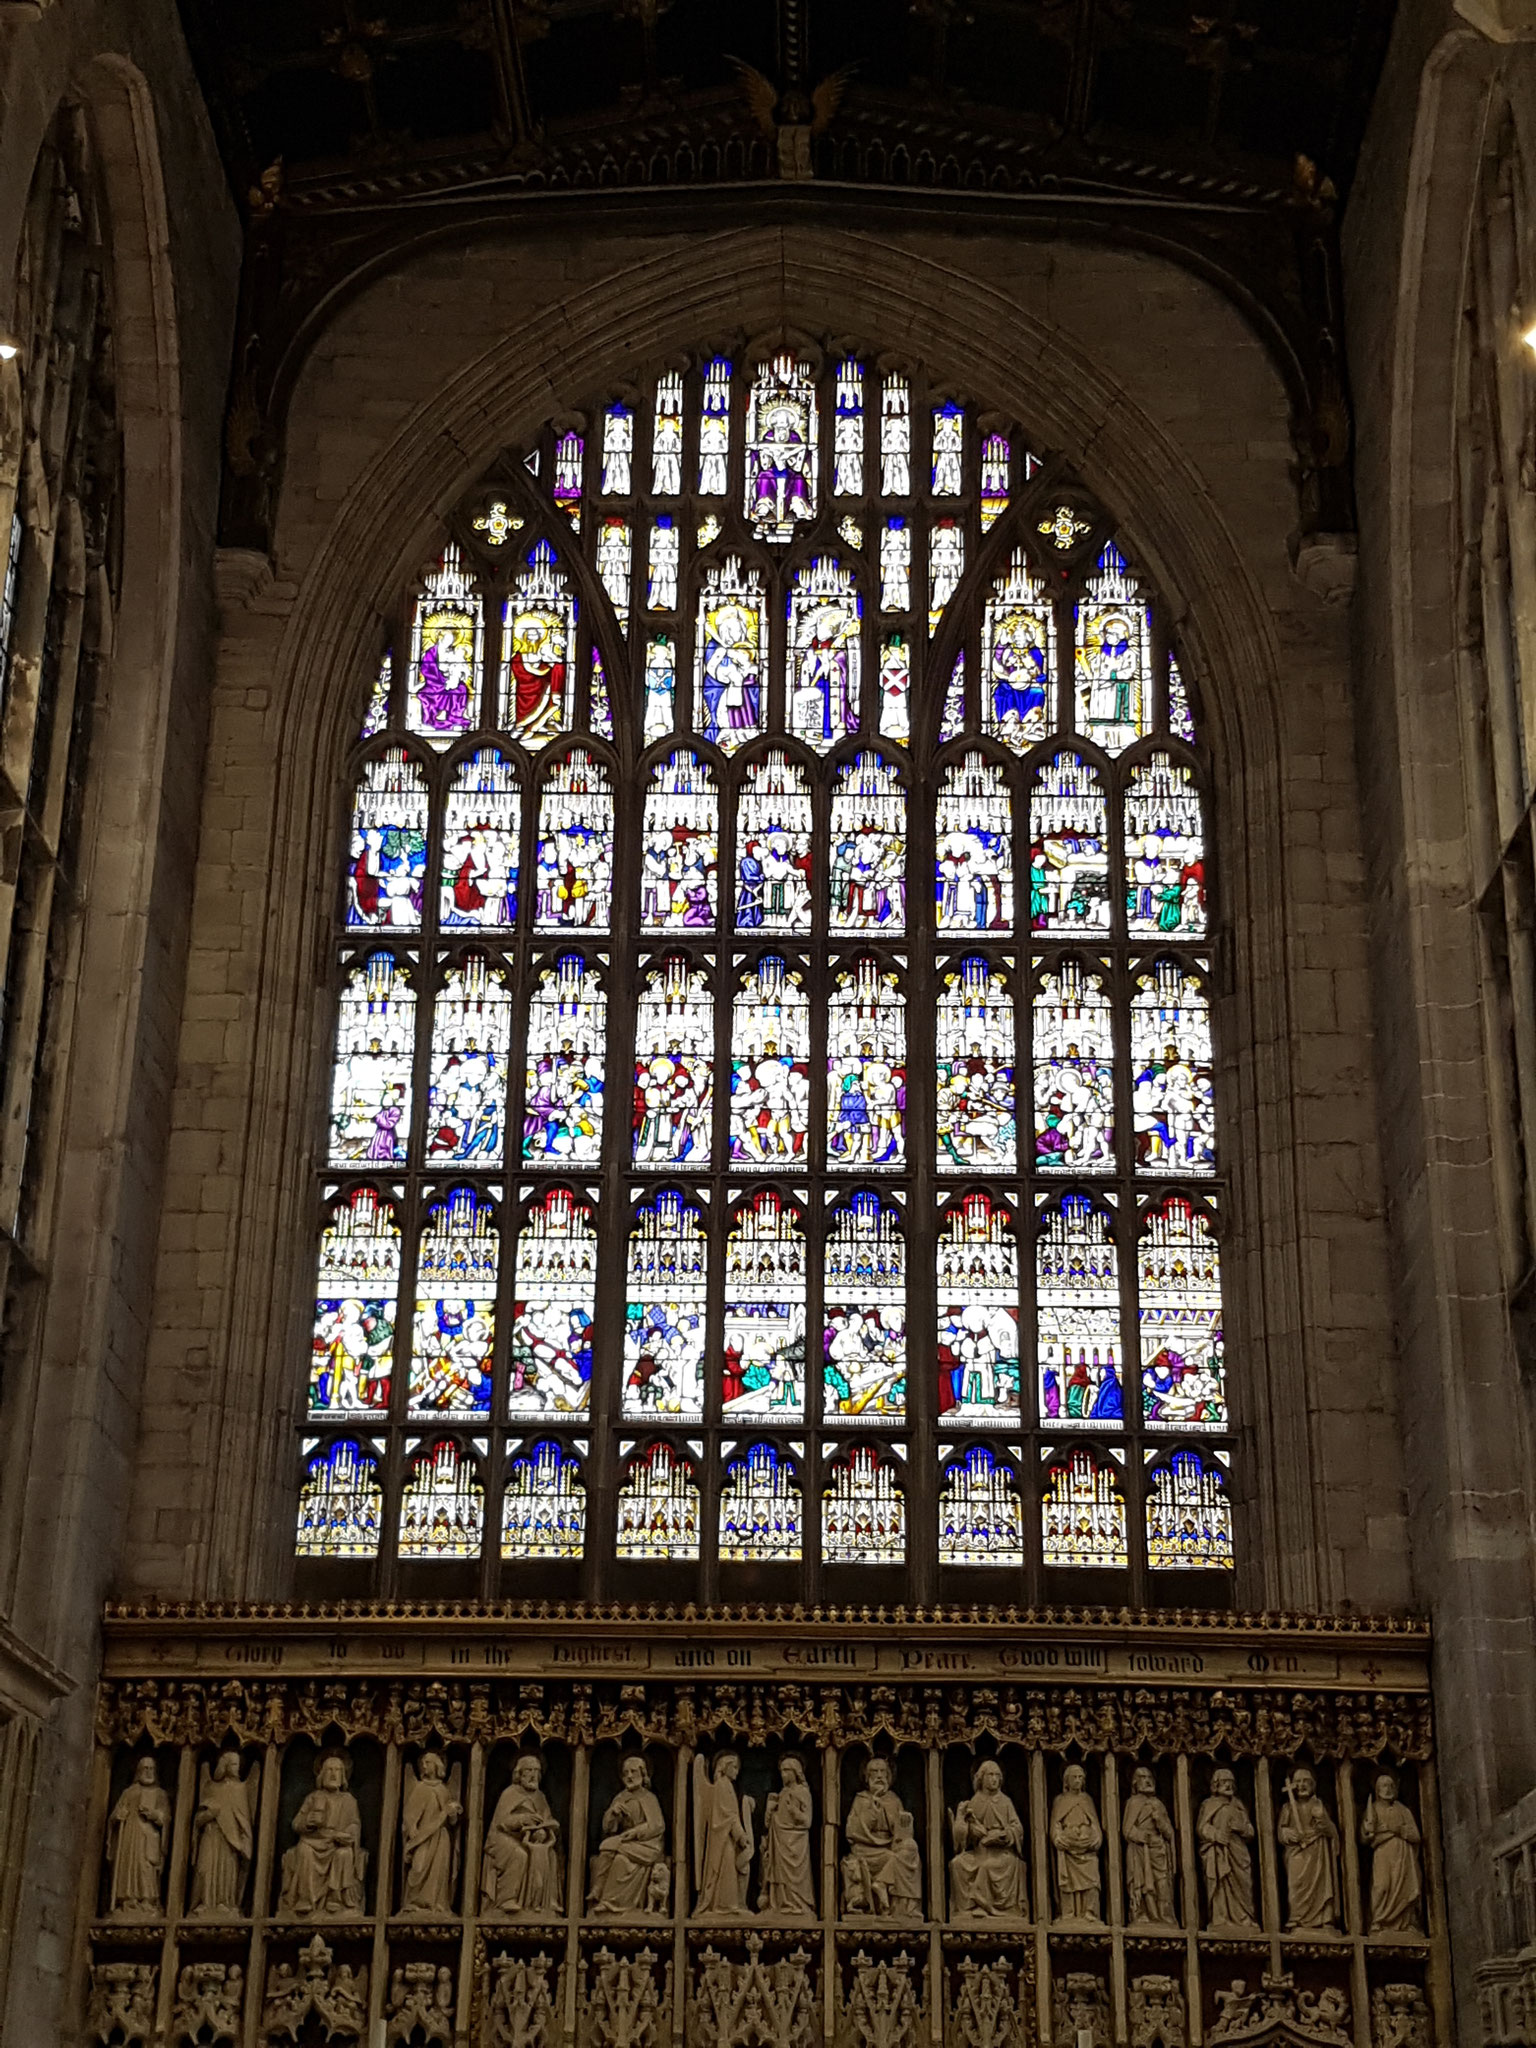 East window, dating from 1430s tells story of St Laurence